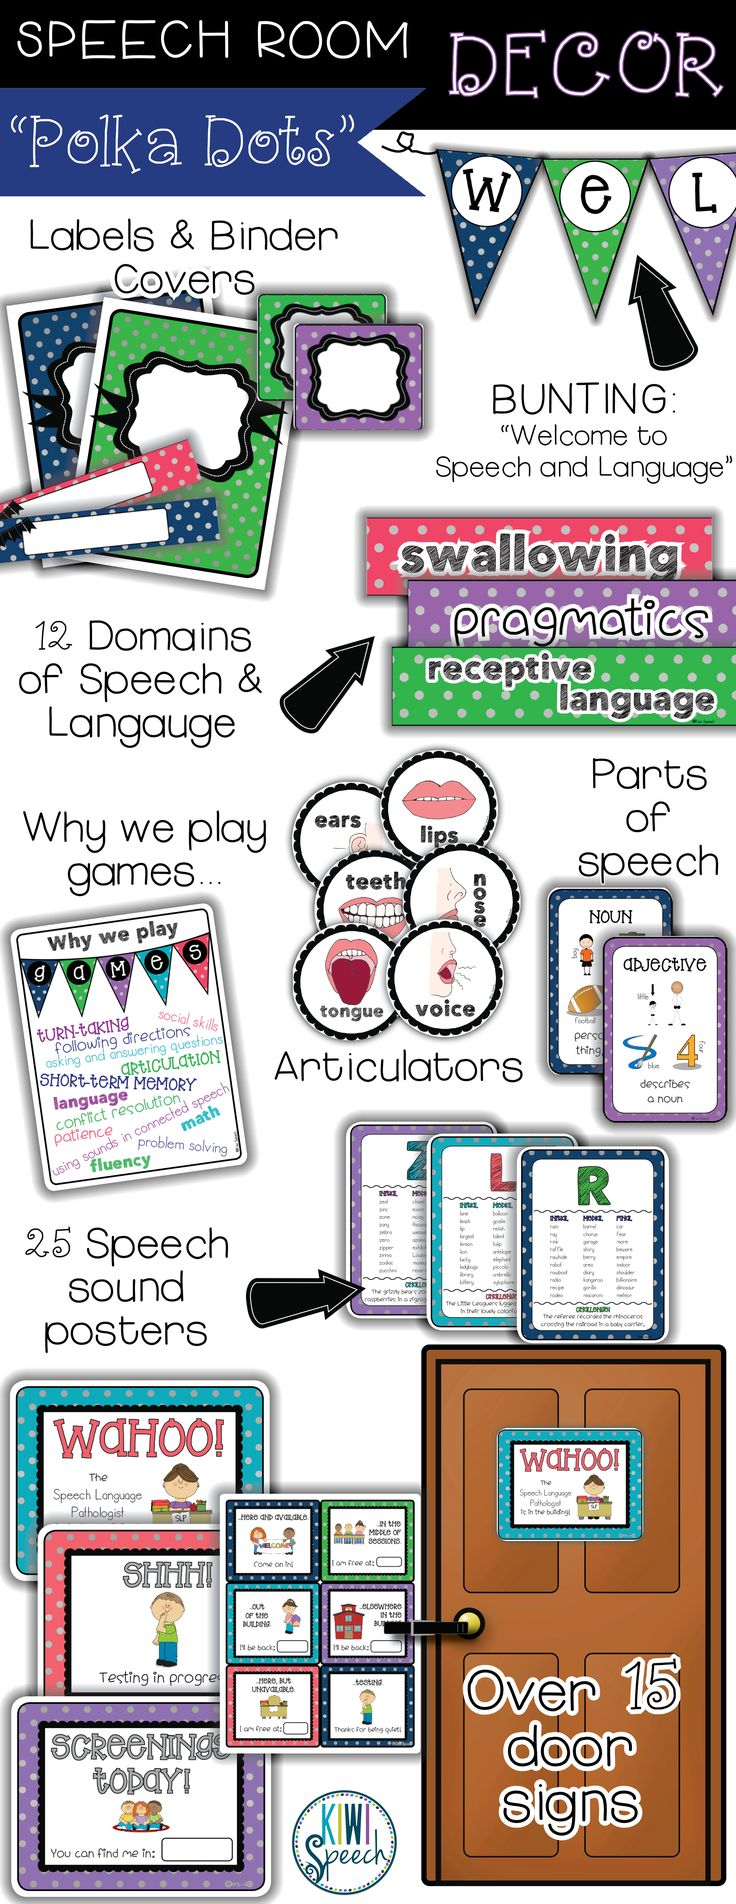 Polka Dots themed Decor Kit for Speech Therapy Classroom, including labels and binder covers, bunting, posters, door signs, and more!  Kiwi Speech on Teachers Pay Teachers. TPT Digital Download. Speech Therapy Resources. Speech/Language. Speech Therapist.